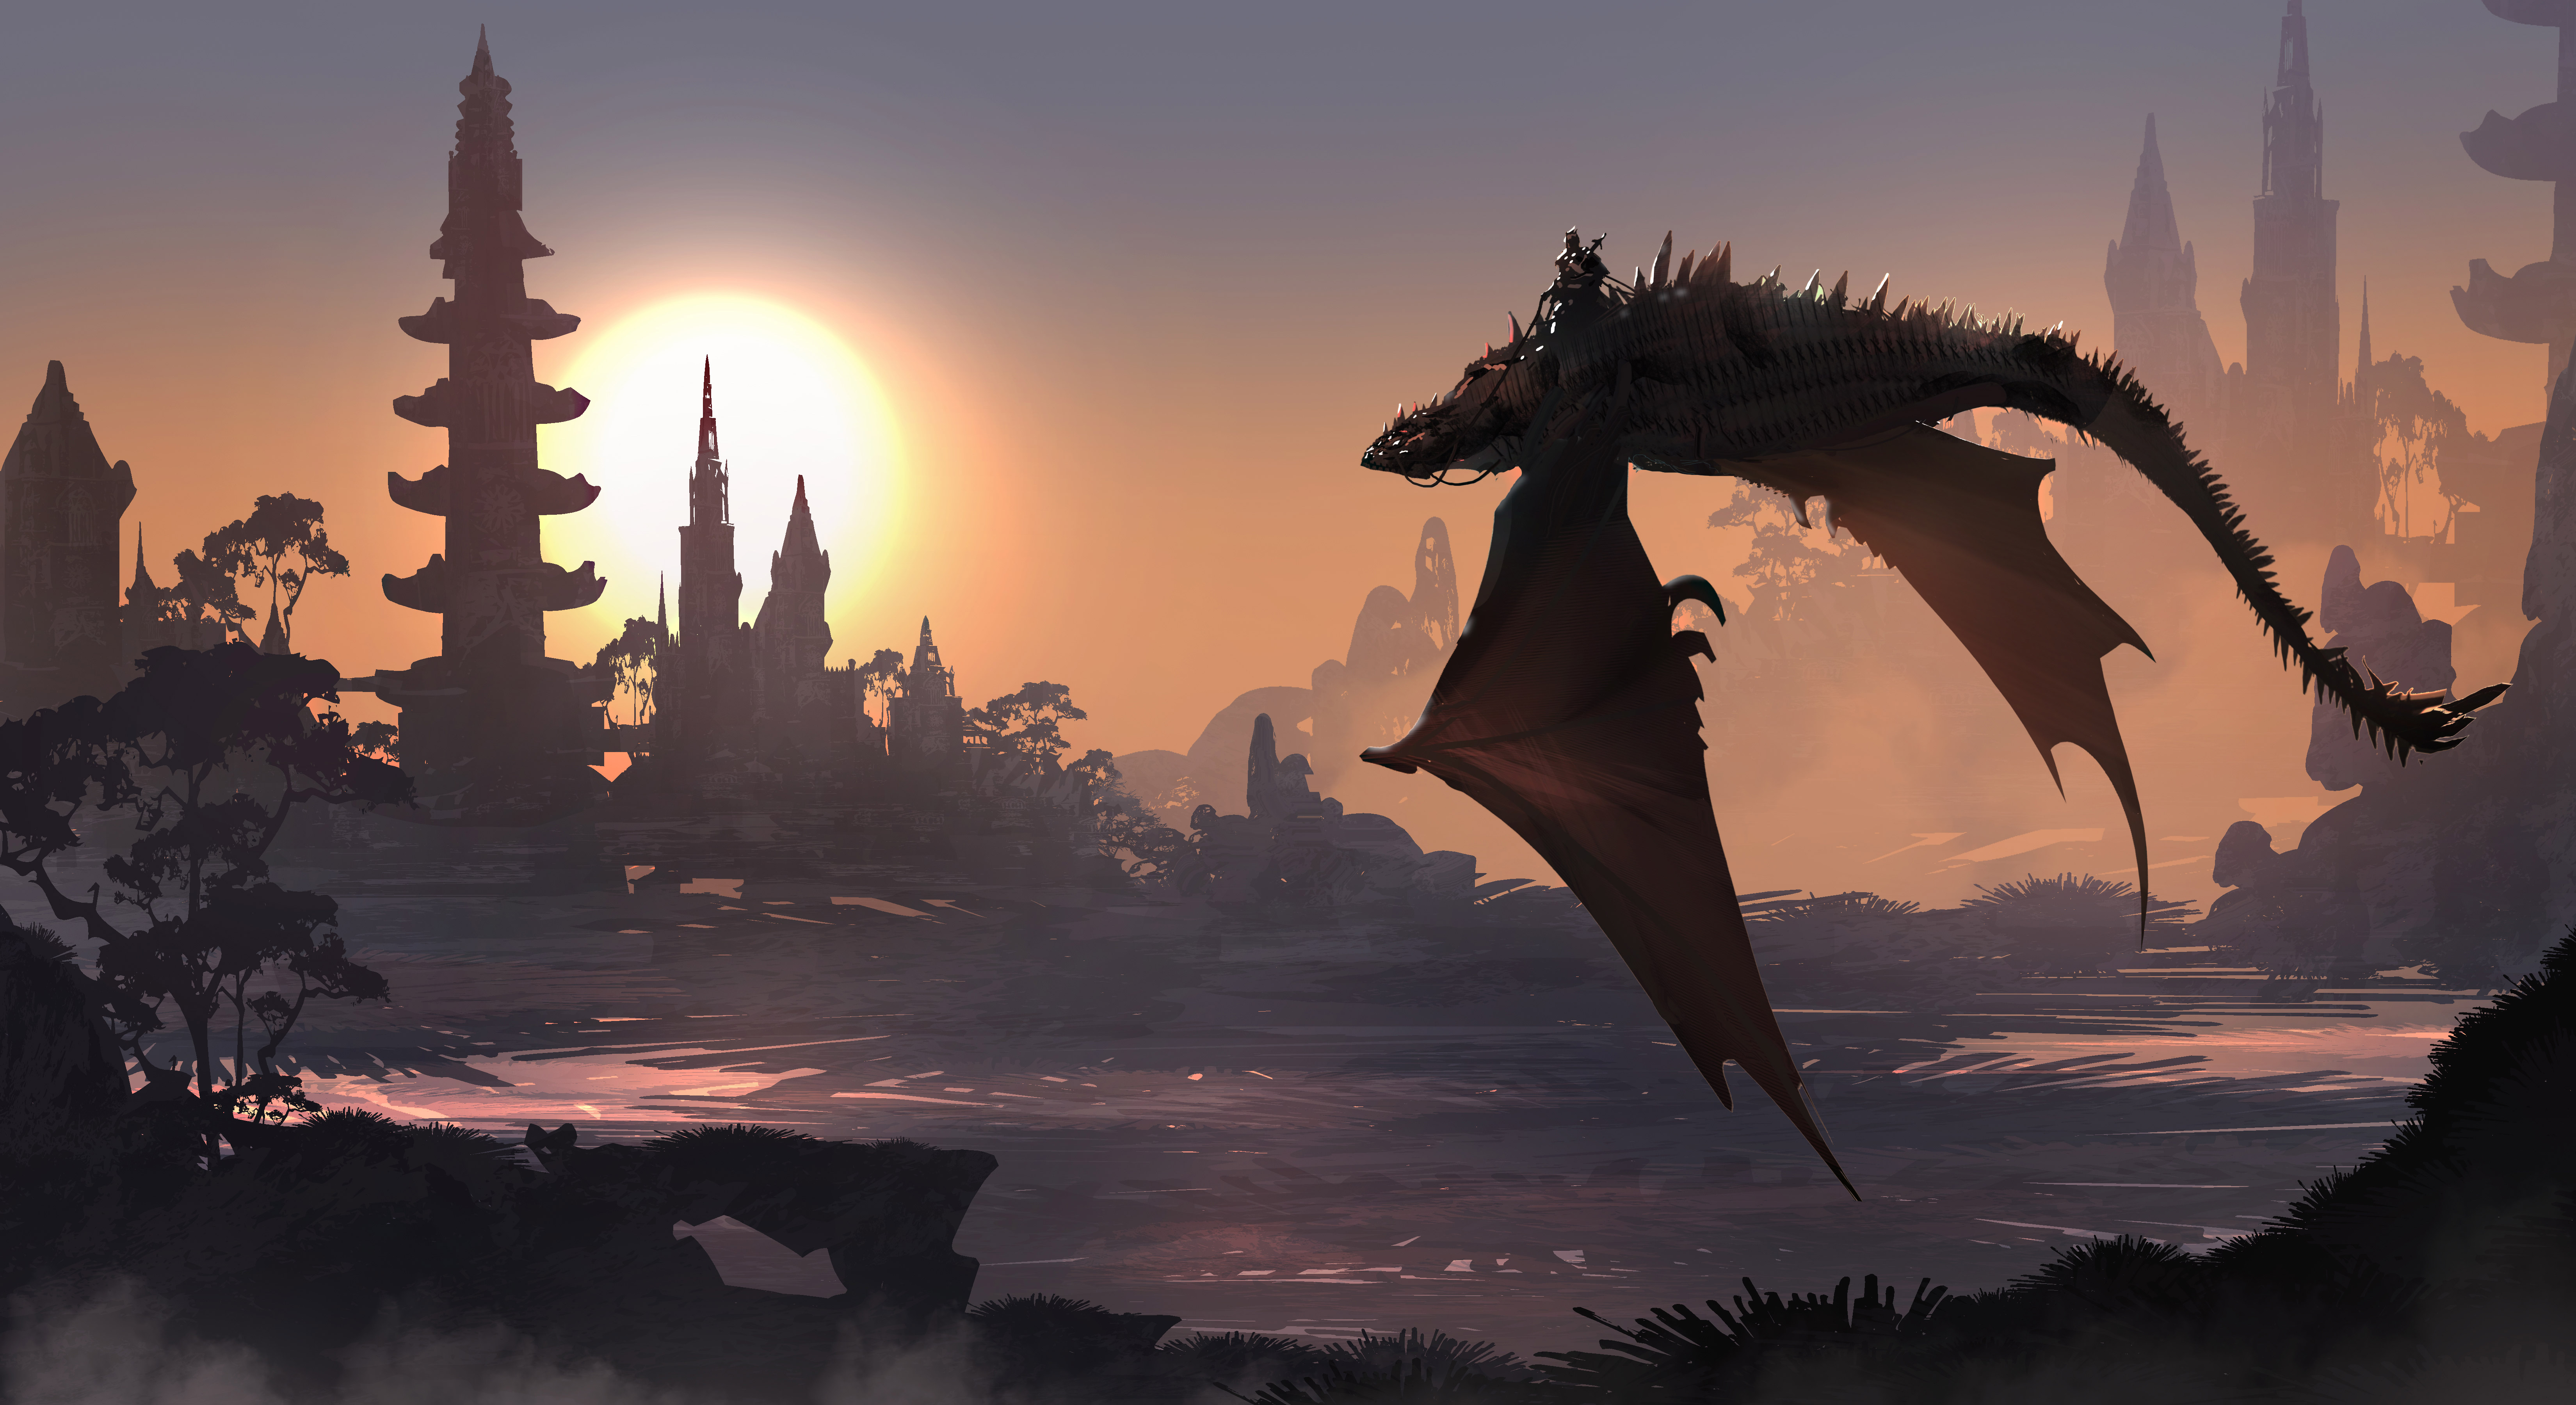 Dragon Fantasy Art 5k, Hd Artist, 4k Wallpapers, Images